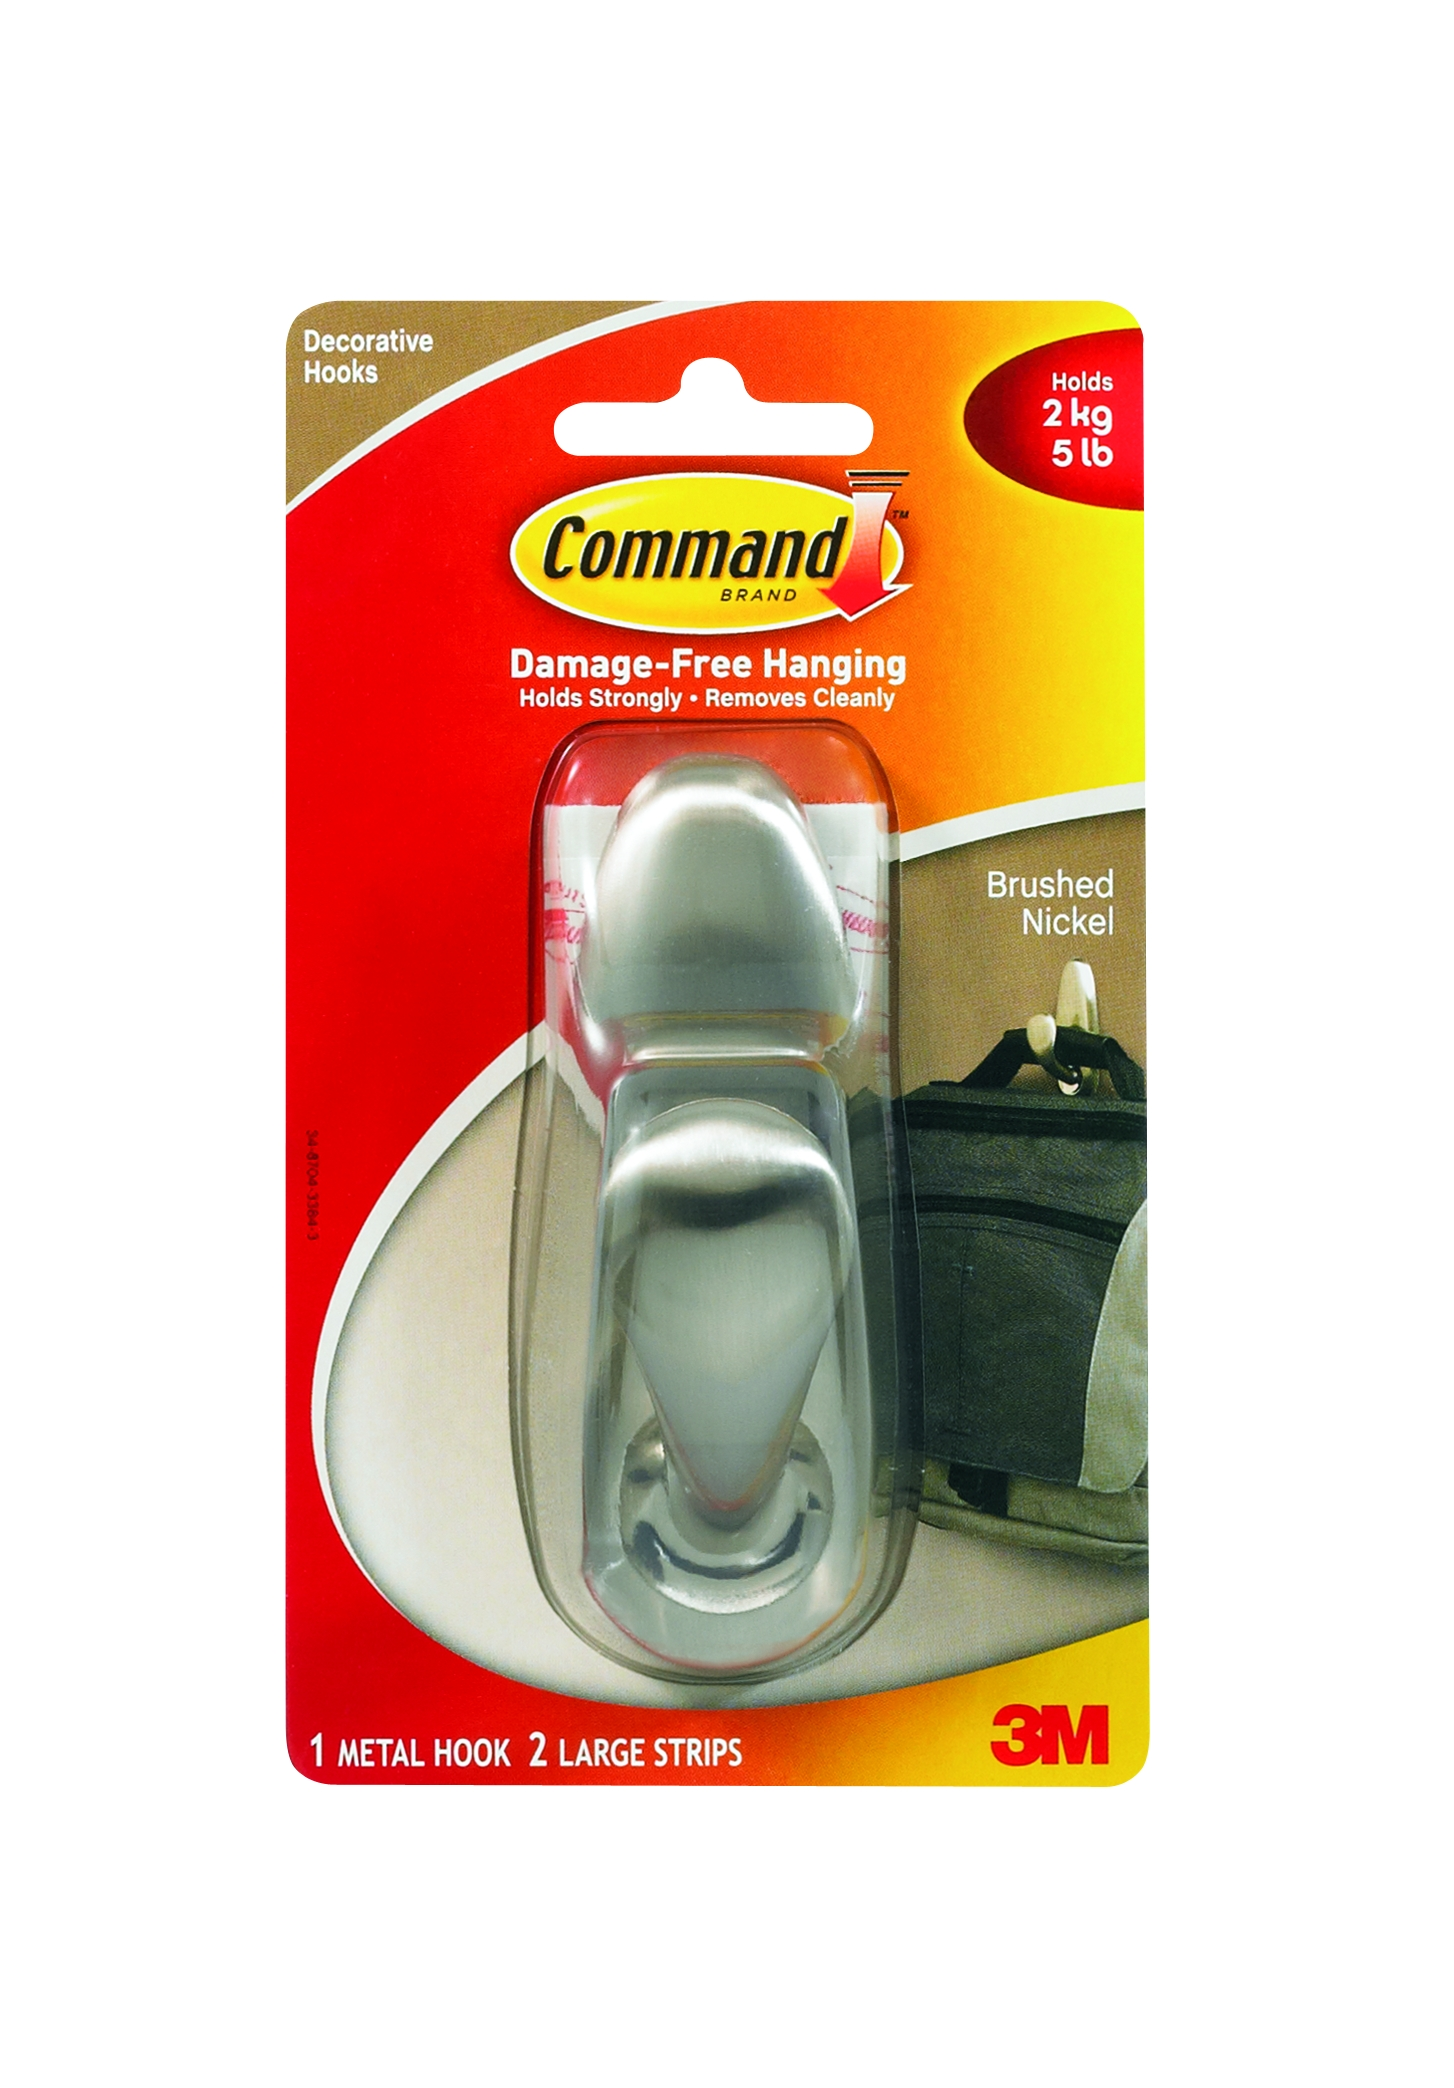 Command Brushed Nickel Large Metal Hook